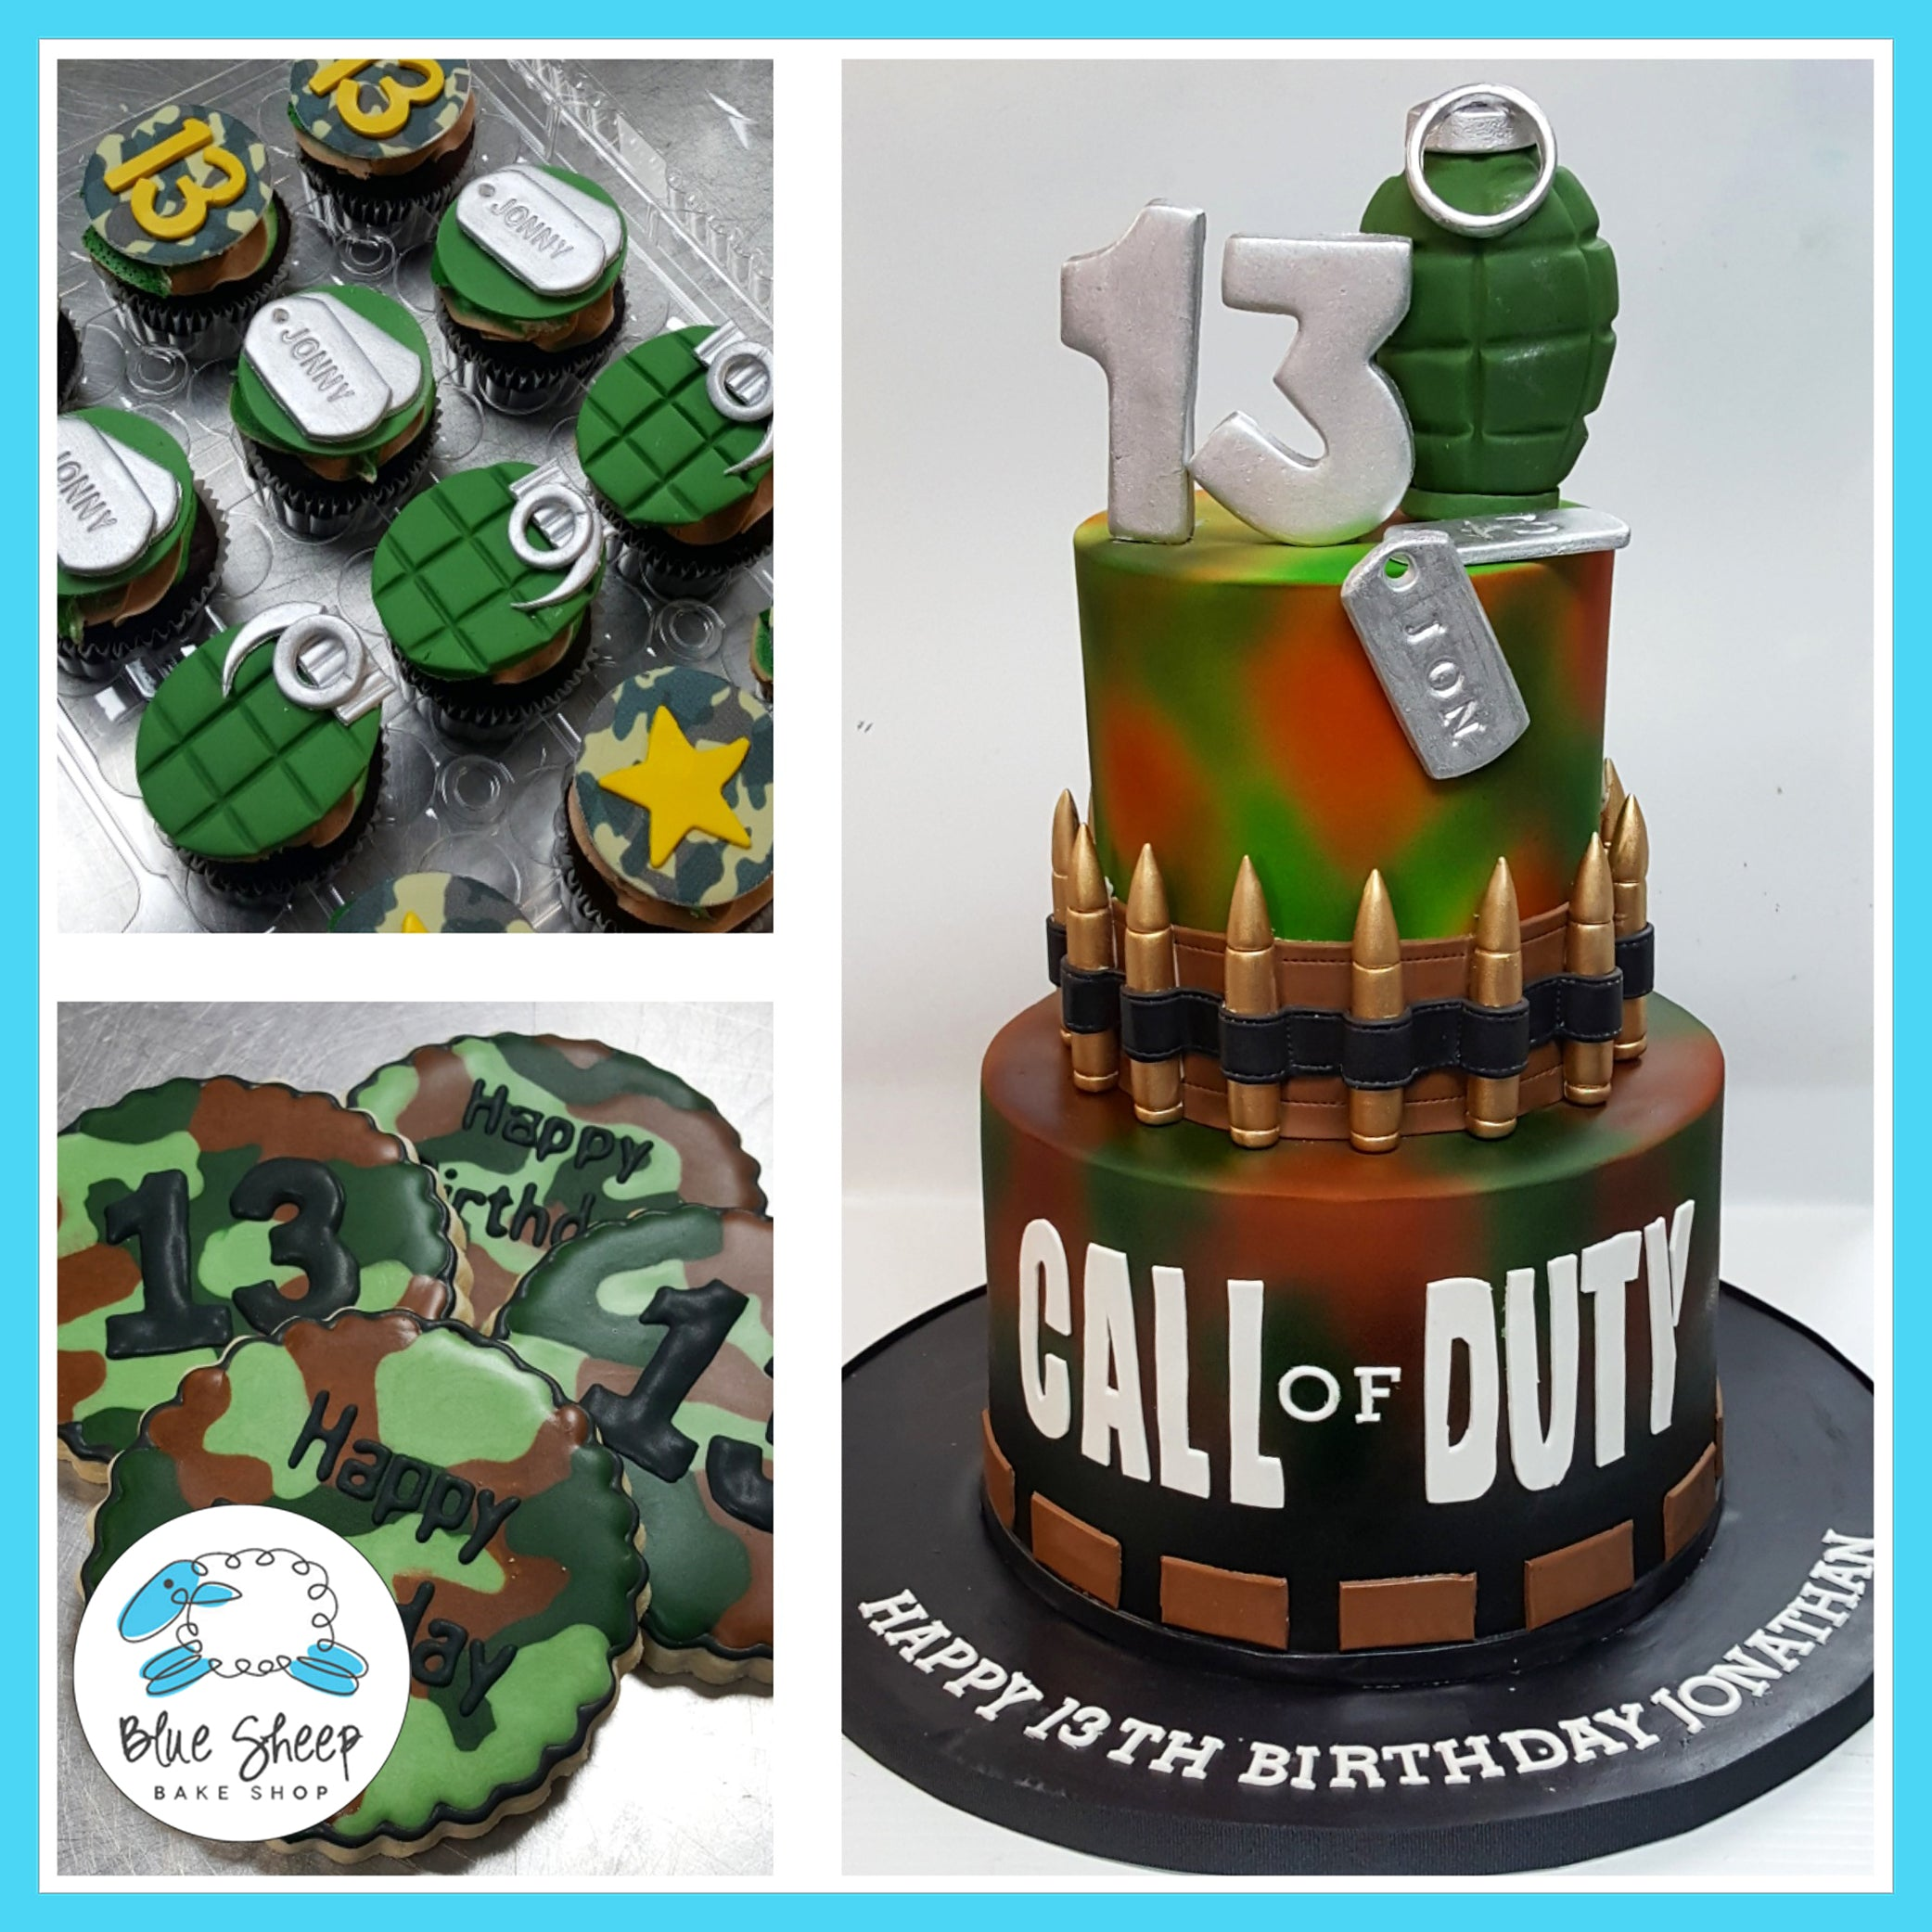 Pleasant Call Of Duty Video Game Cake Nj Custom Cakes Blue Sheep Bake Shop Funny Birthday Cards Online Inifodamsfinfo